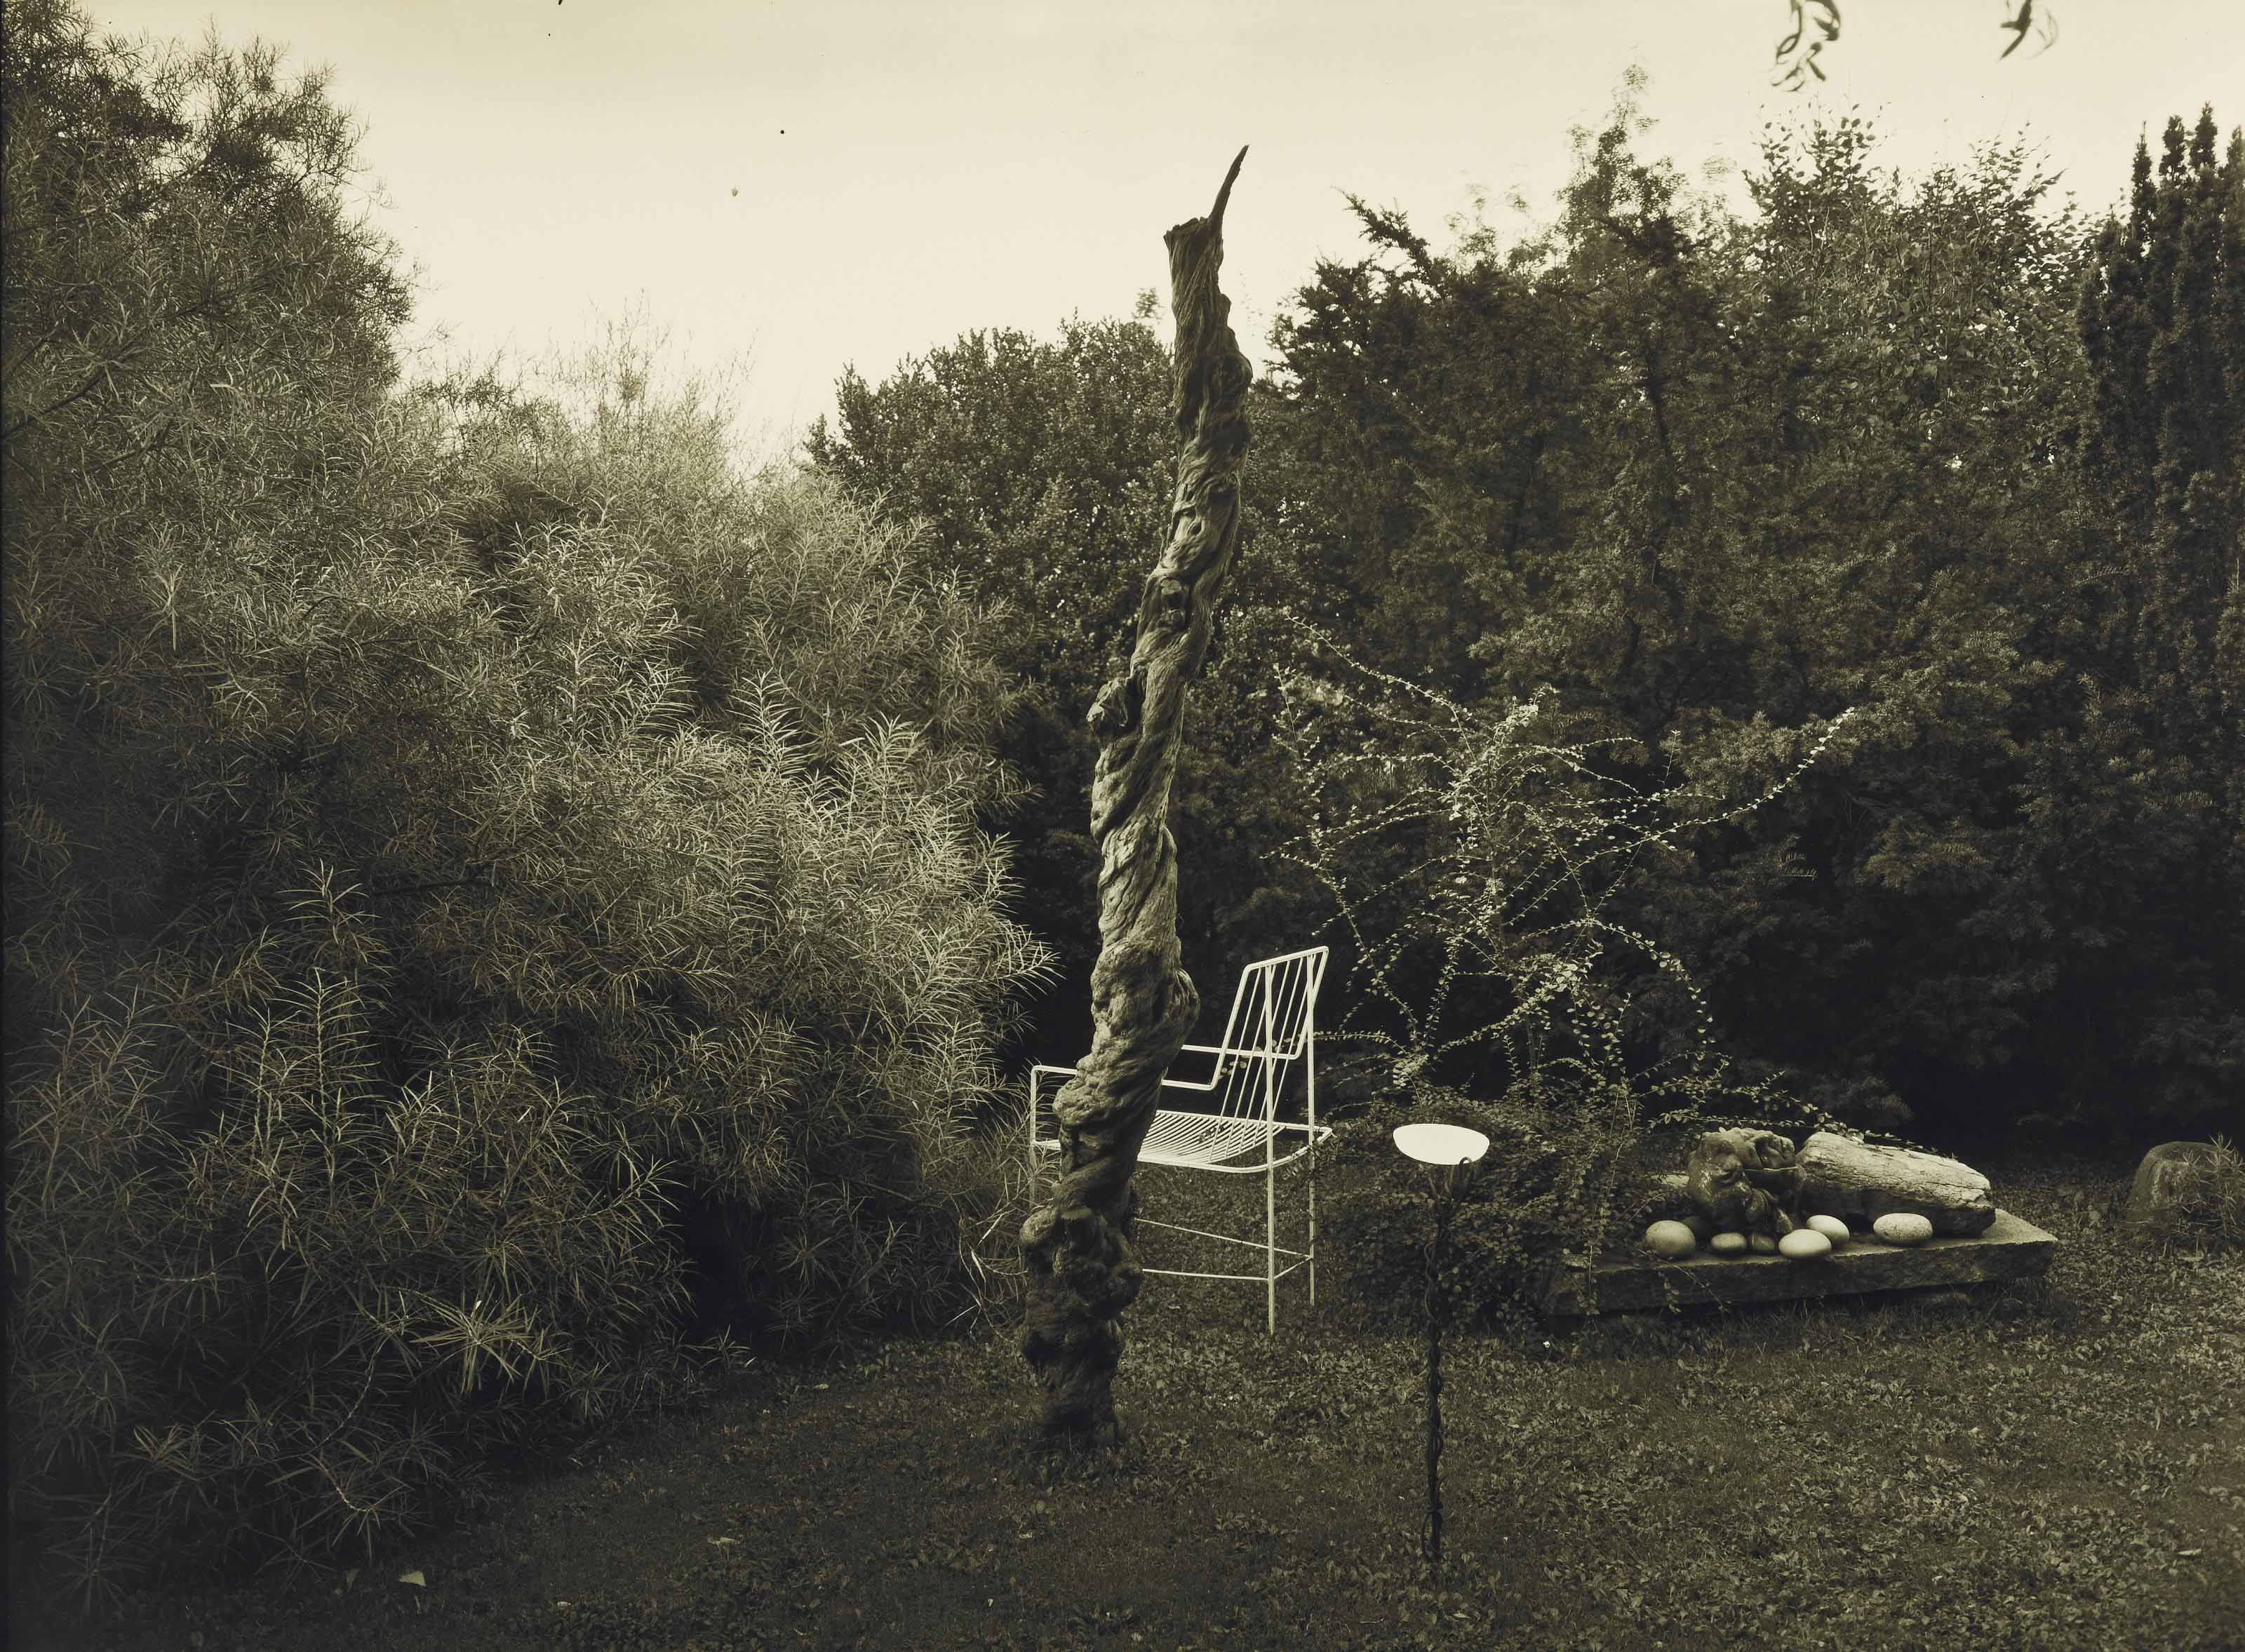 From the series 'In the Magic Garden', c. 1956